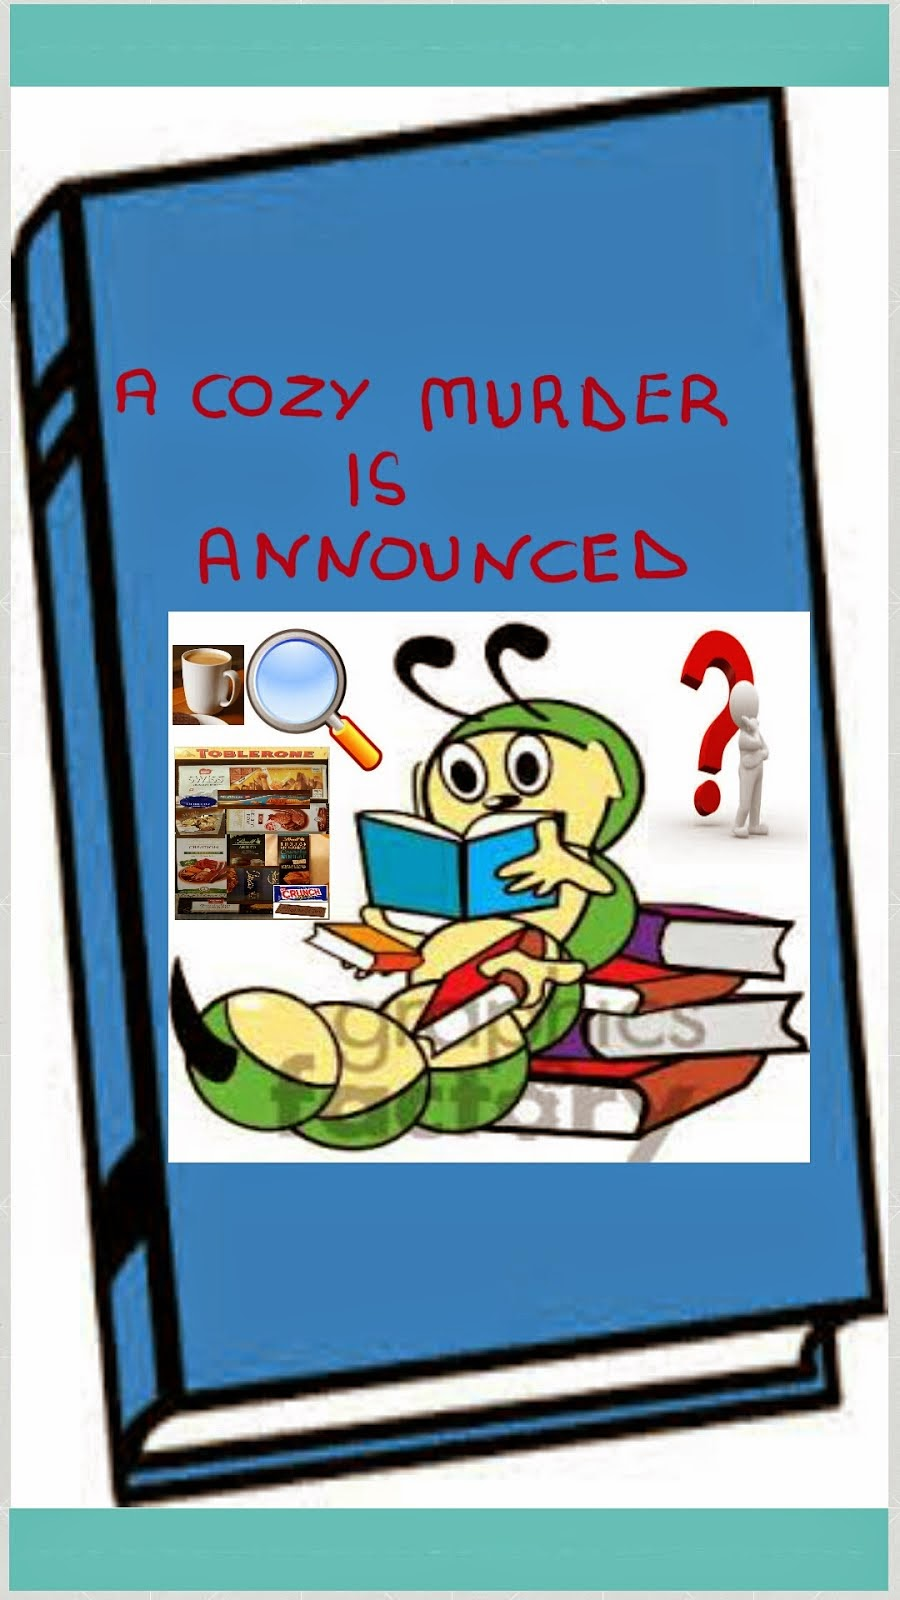 A COZY MURDER IS ANNOUNCED